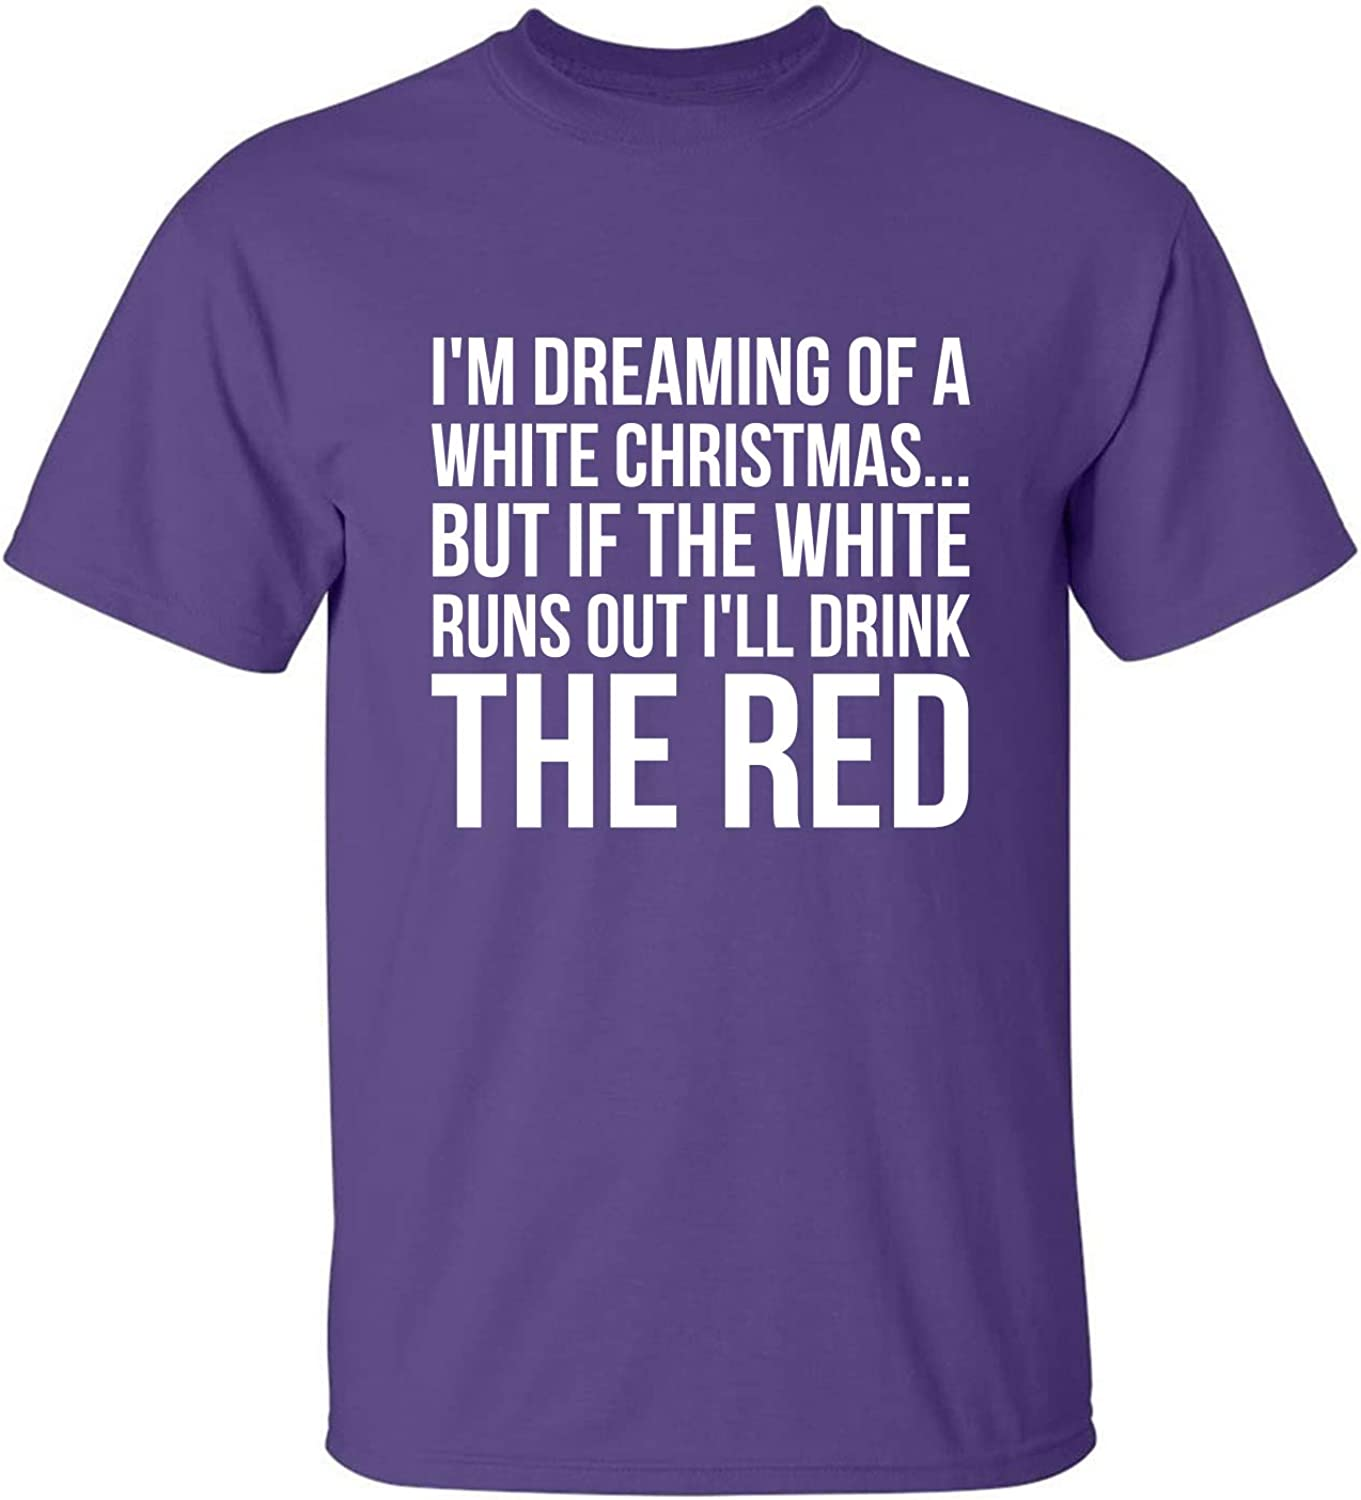 I'm Dreaming of A White Christmas Adult T-Shirt in Purple - XXXX-Large